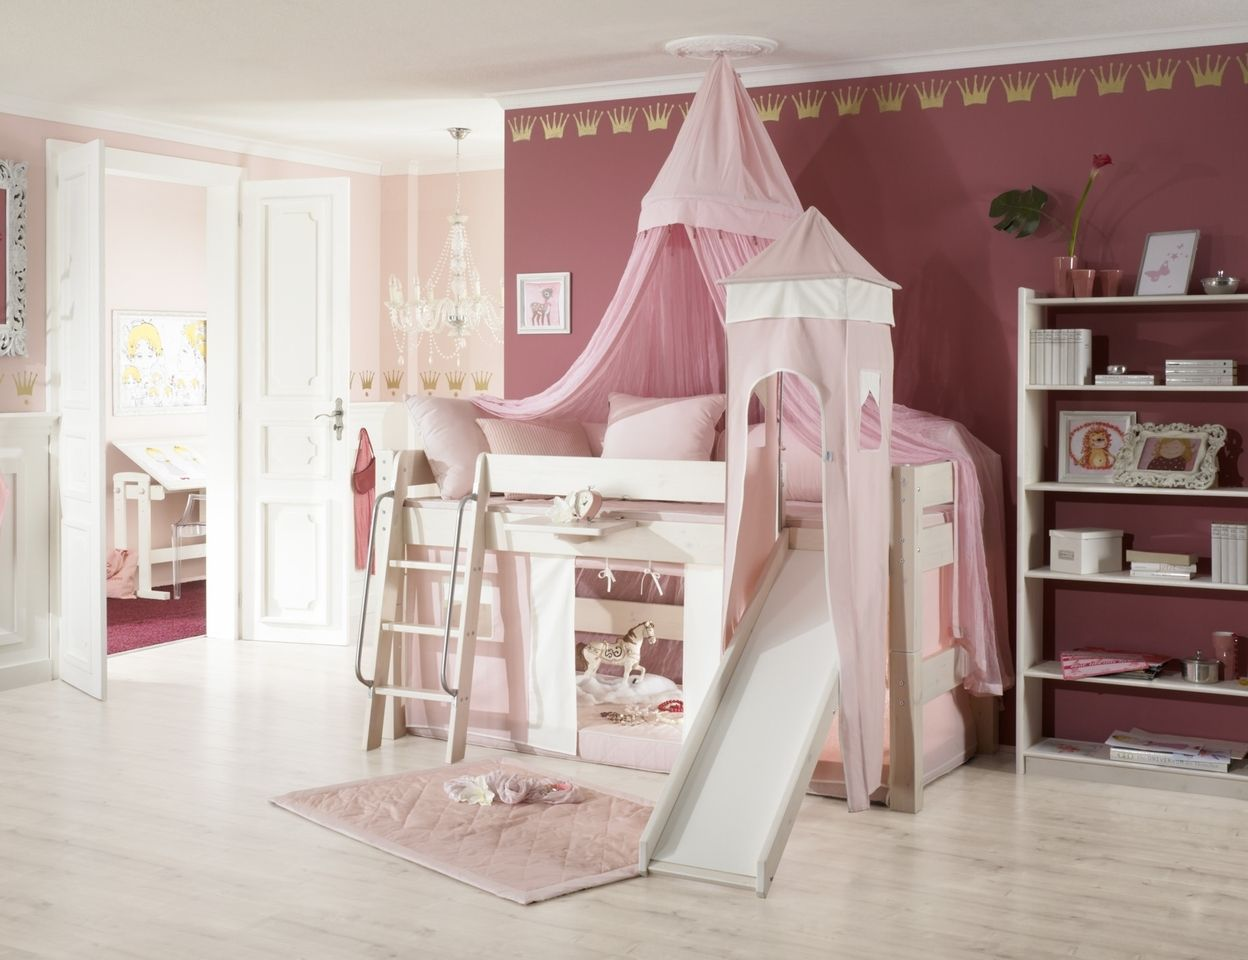 prinzessinnen hochbett mit rutsche weiss rosa kids room hochb. Black Bedroom Furniture Sets. Home Design Ideas